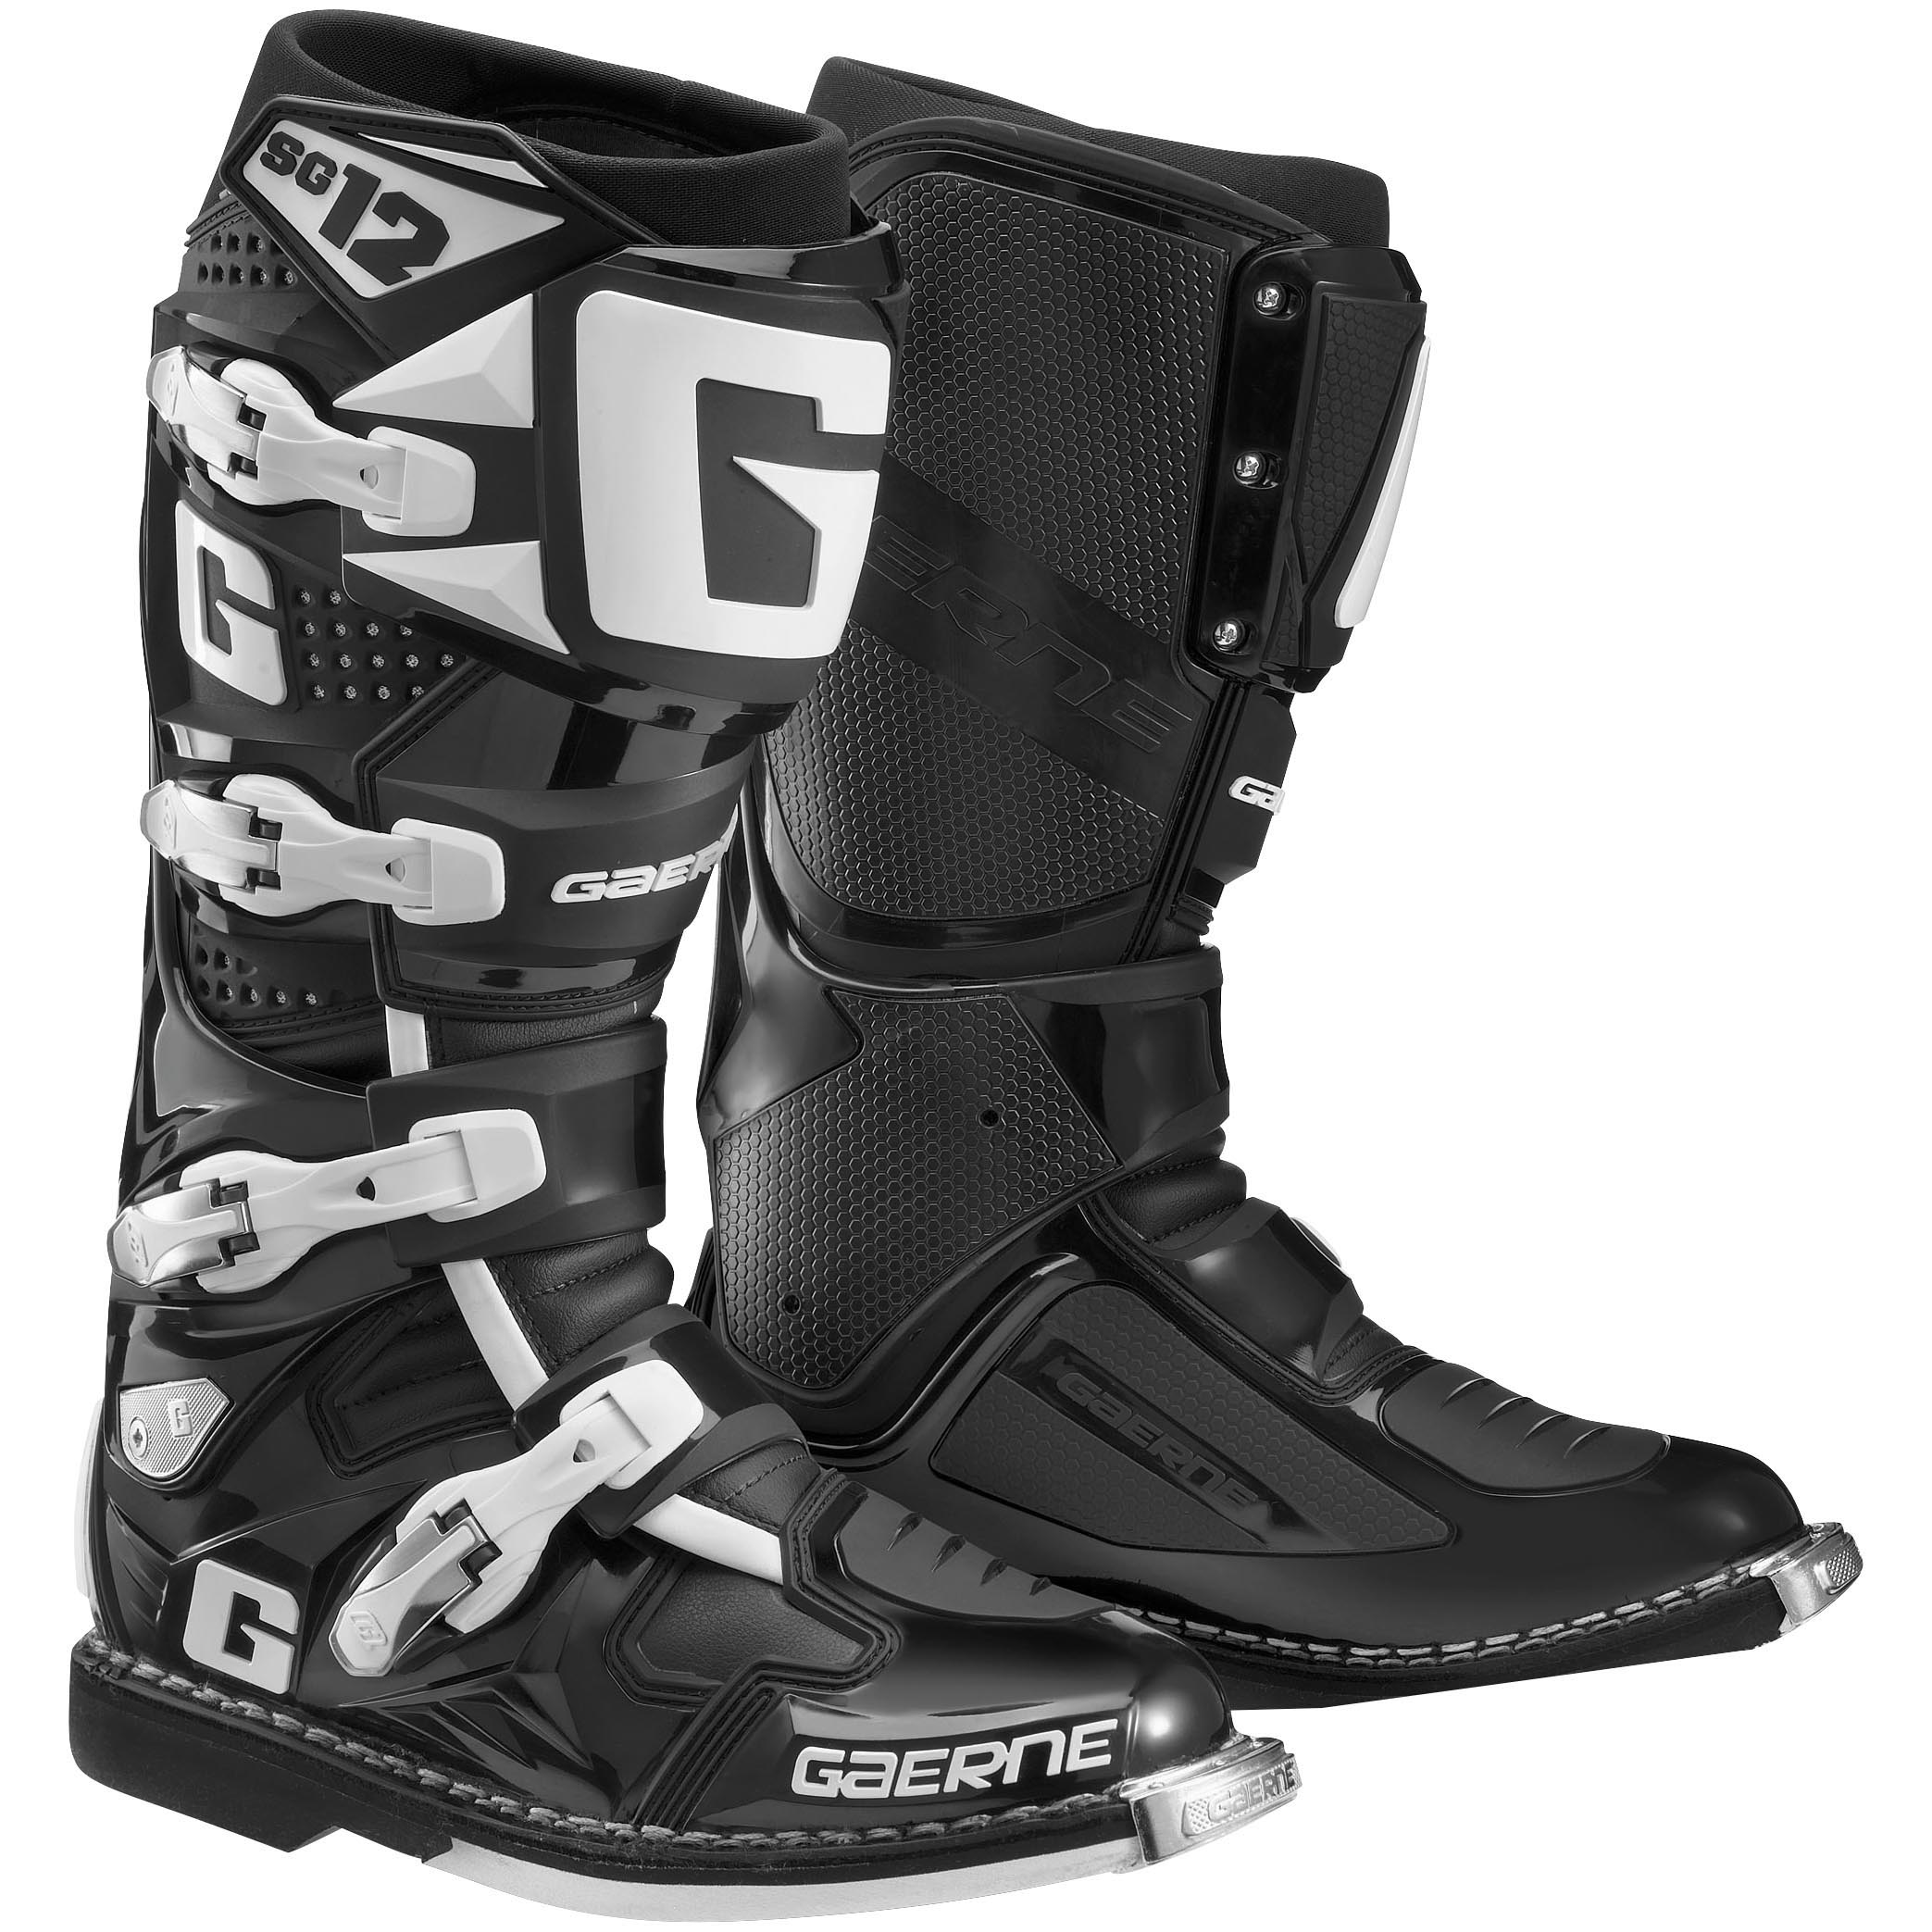 Gaerne SG-12 Mens MX Offroad Boots Black